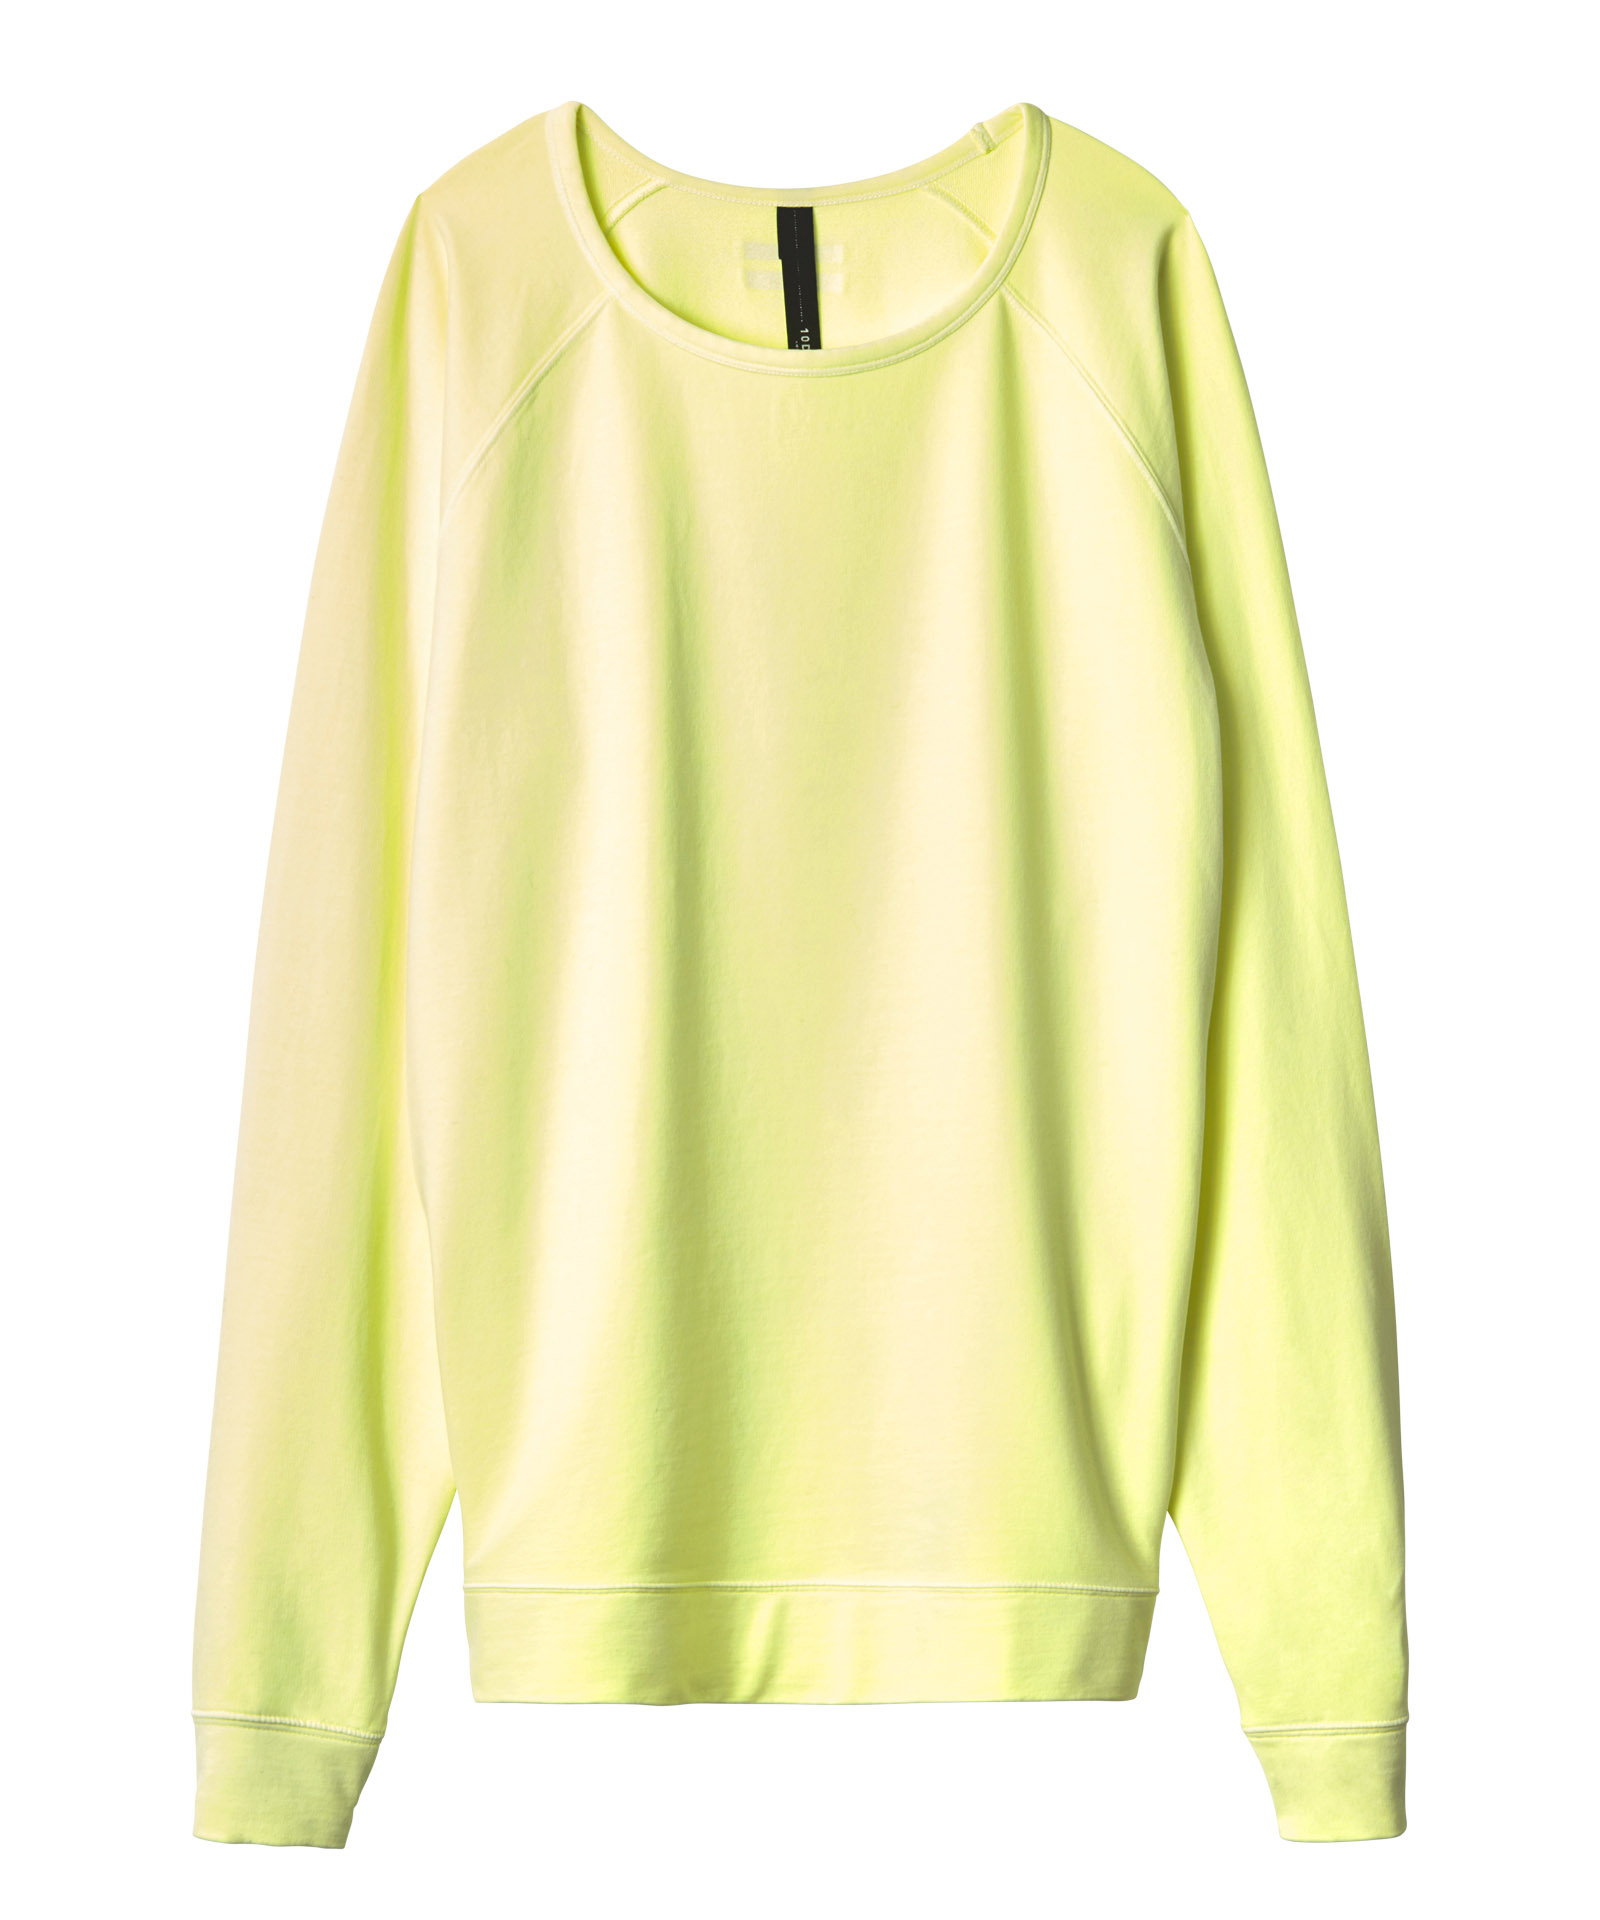 10days fluor yellow the crew neck sweater